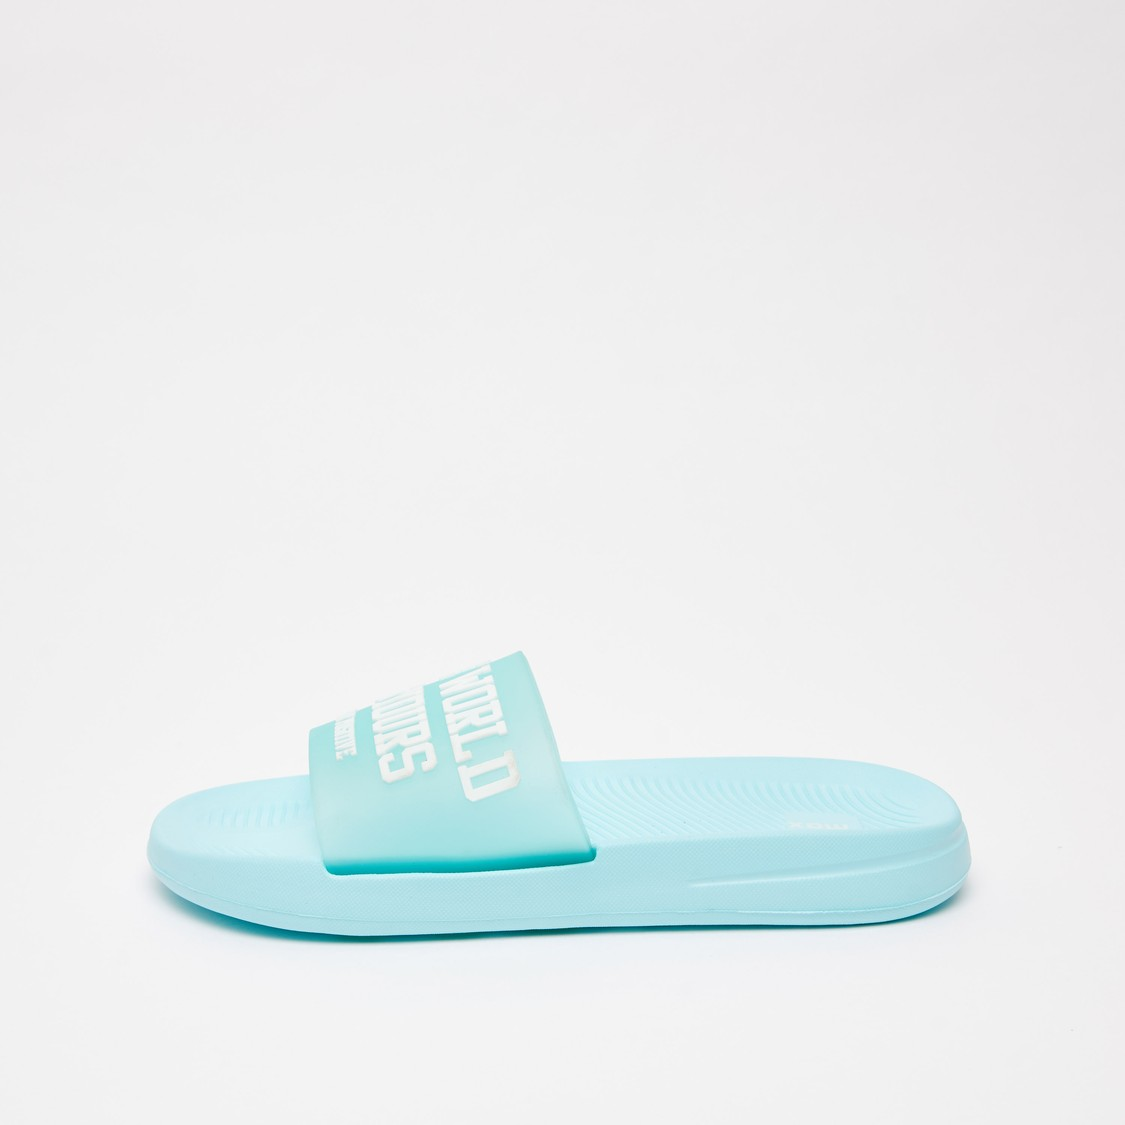 Embossed Print Slides with Broad Strap and Textured Footbed